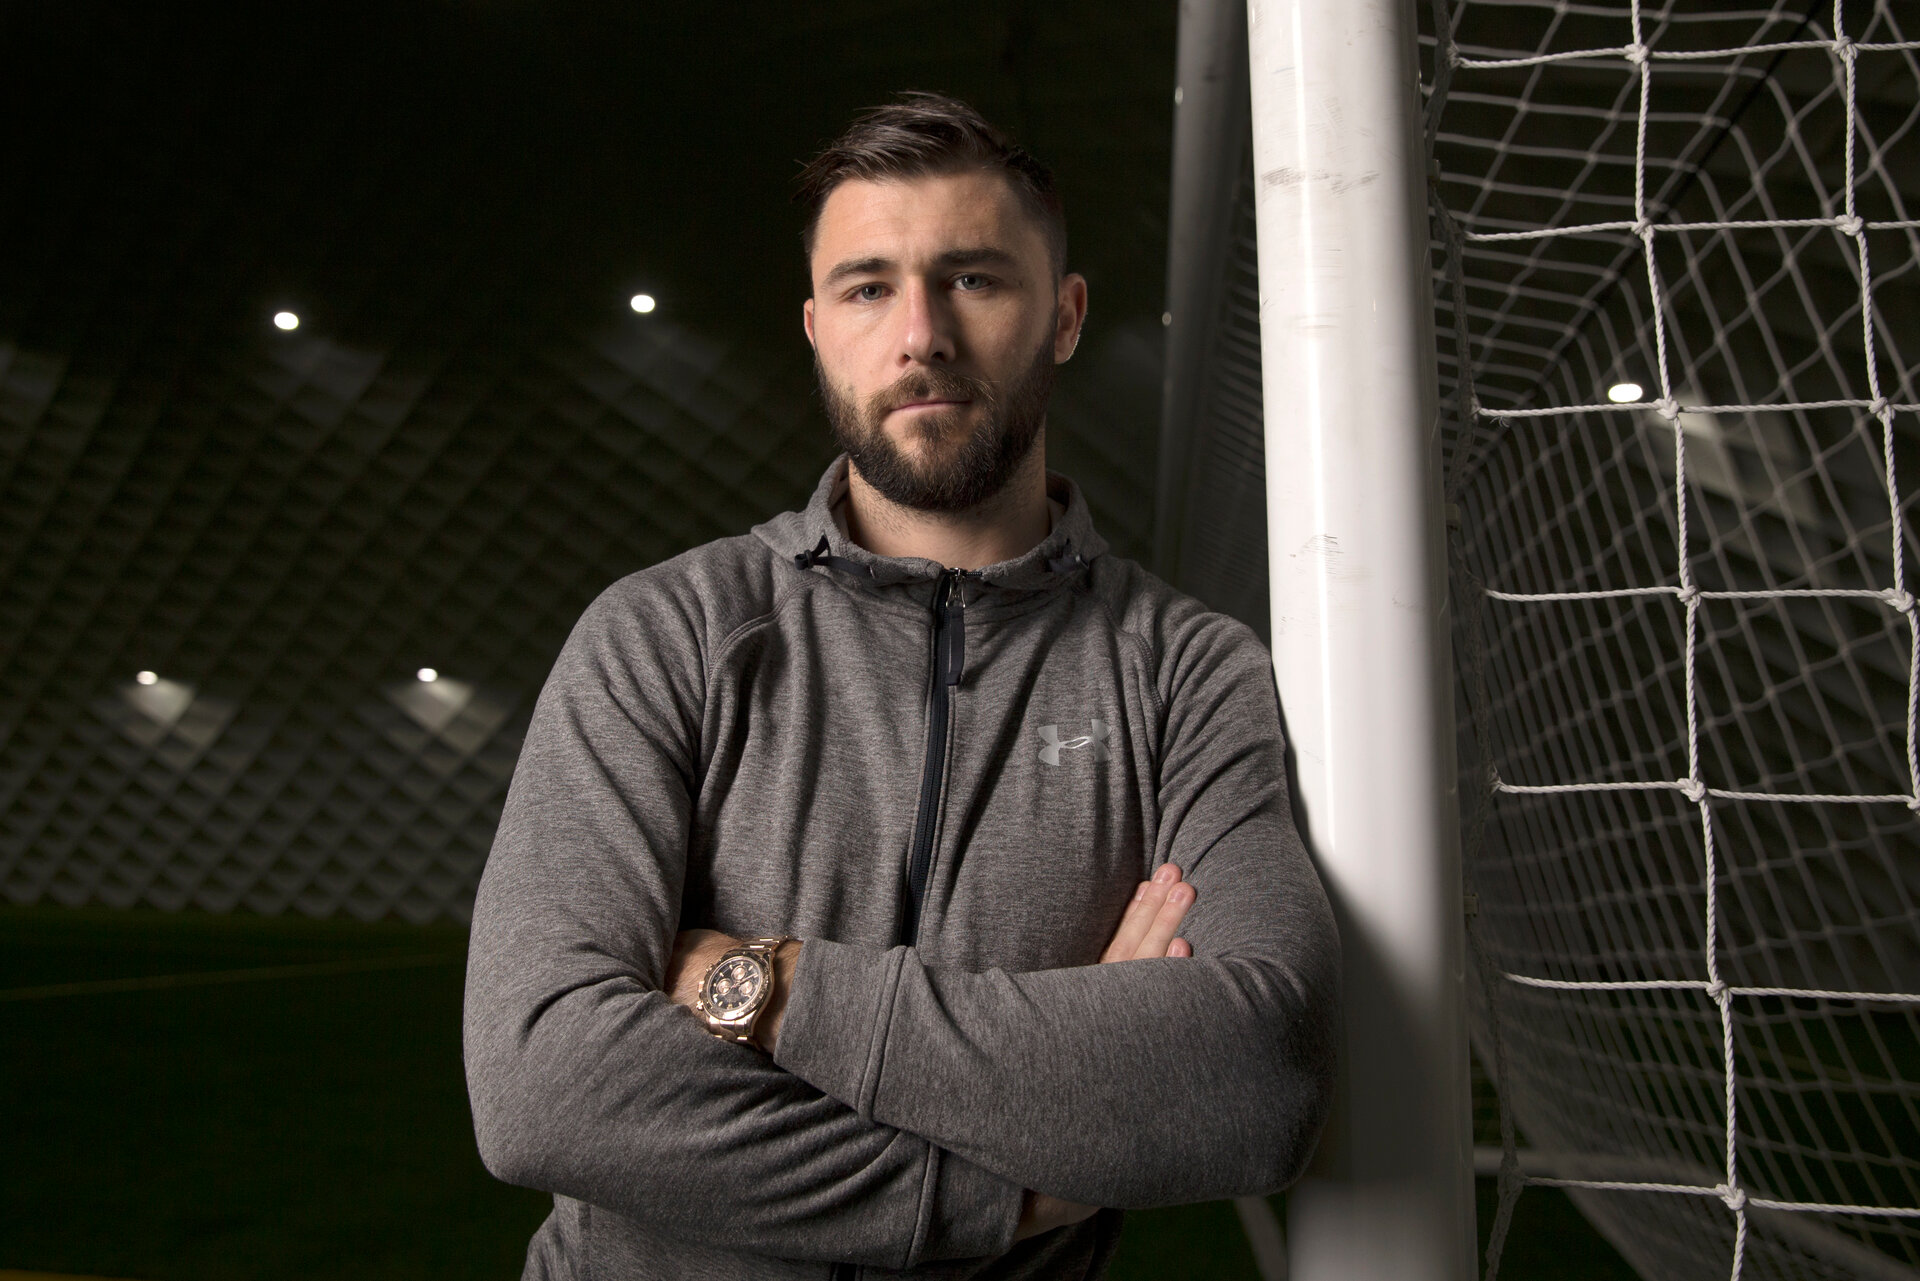 SOUTHAMPTON, ENGLAND - DECEMBER 22: Southampton FC's Charlie Austin pictured for the club's match day magazine, at the Staplewood Campus, on December 20, 2017 in Southampton, England. (Photo by Matt Watson/Southampton FC via Getty Images)